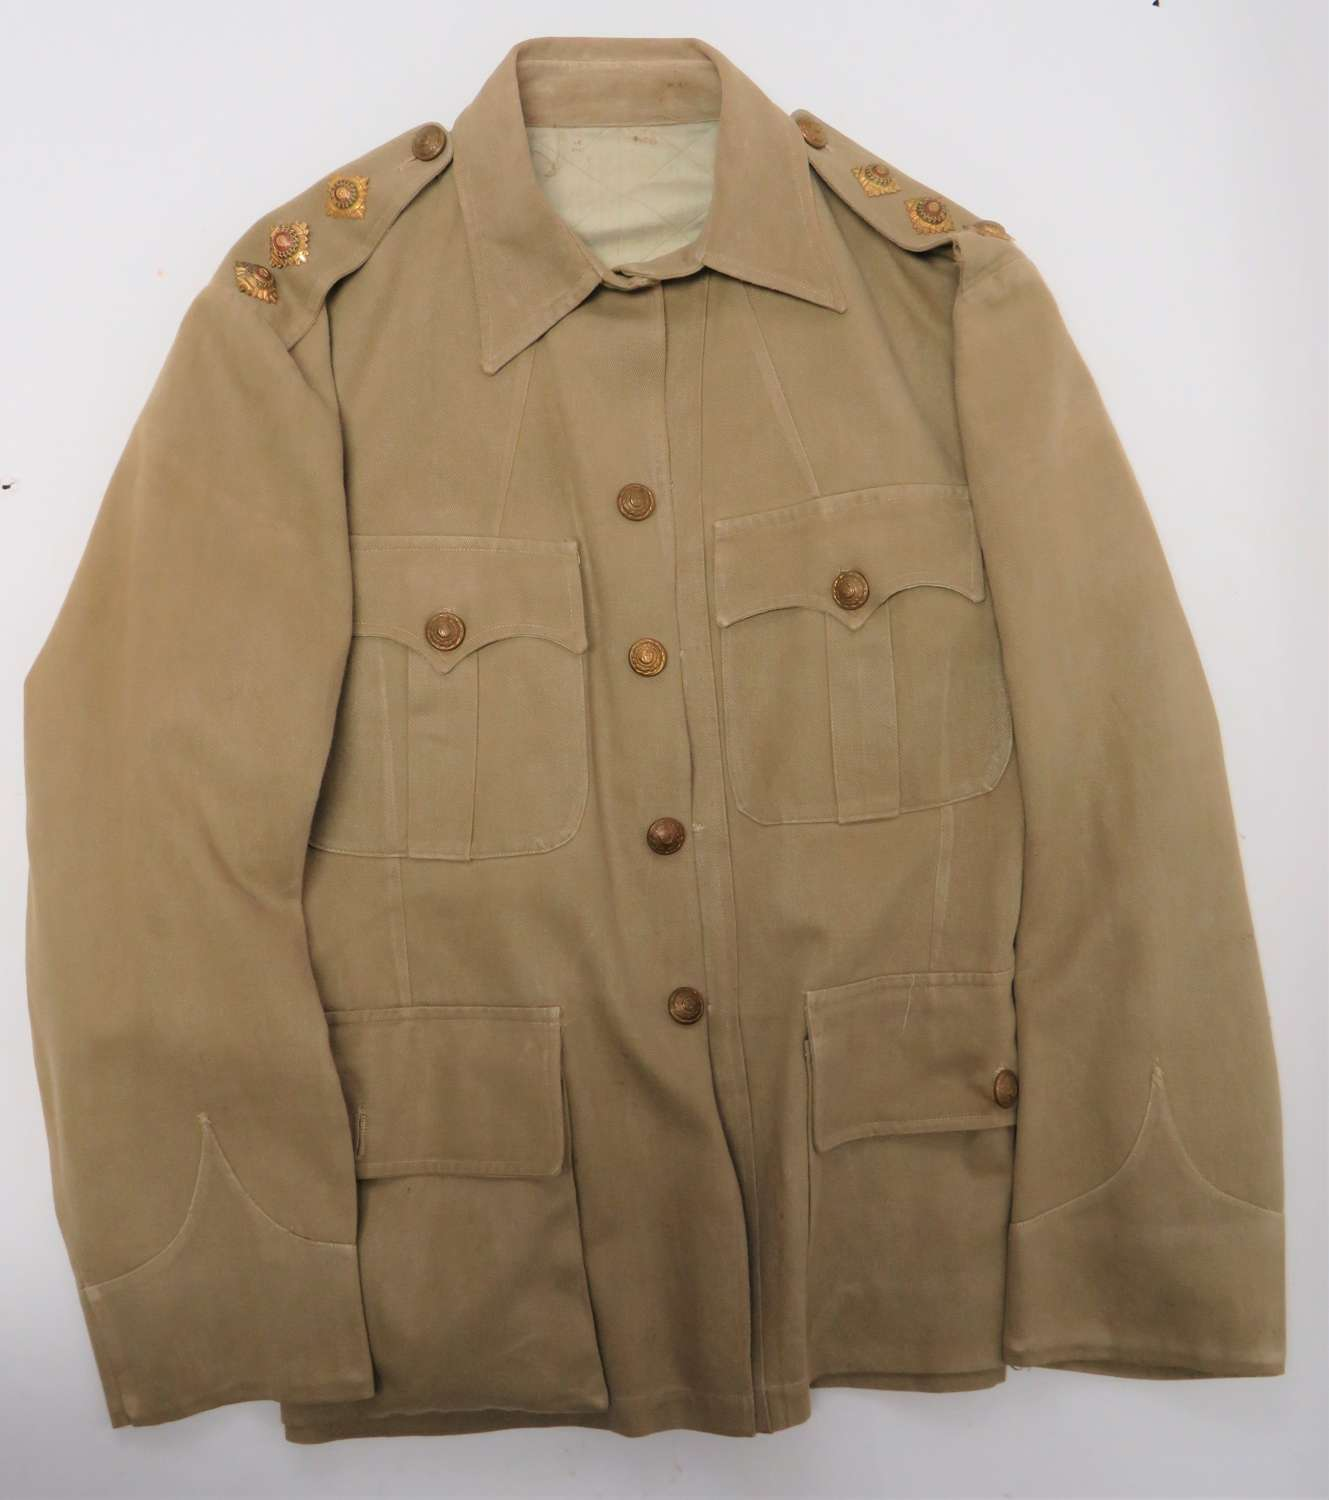 Rare Interwar Officers Tropical Tunic with Spine Protector